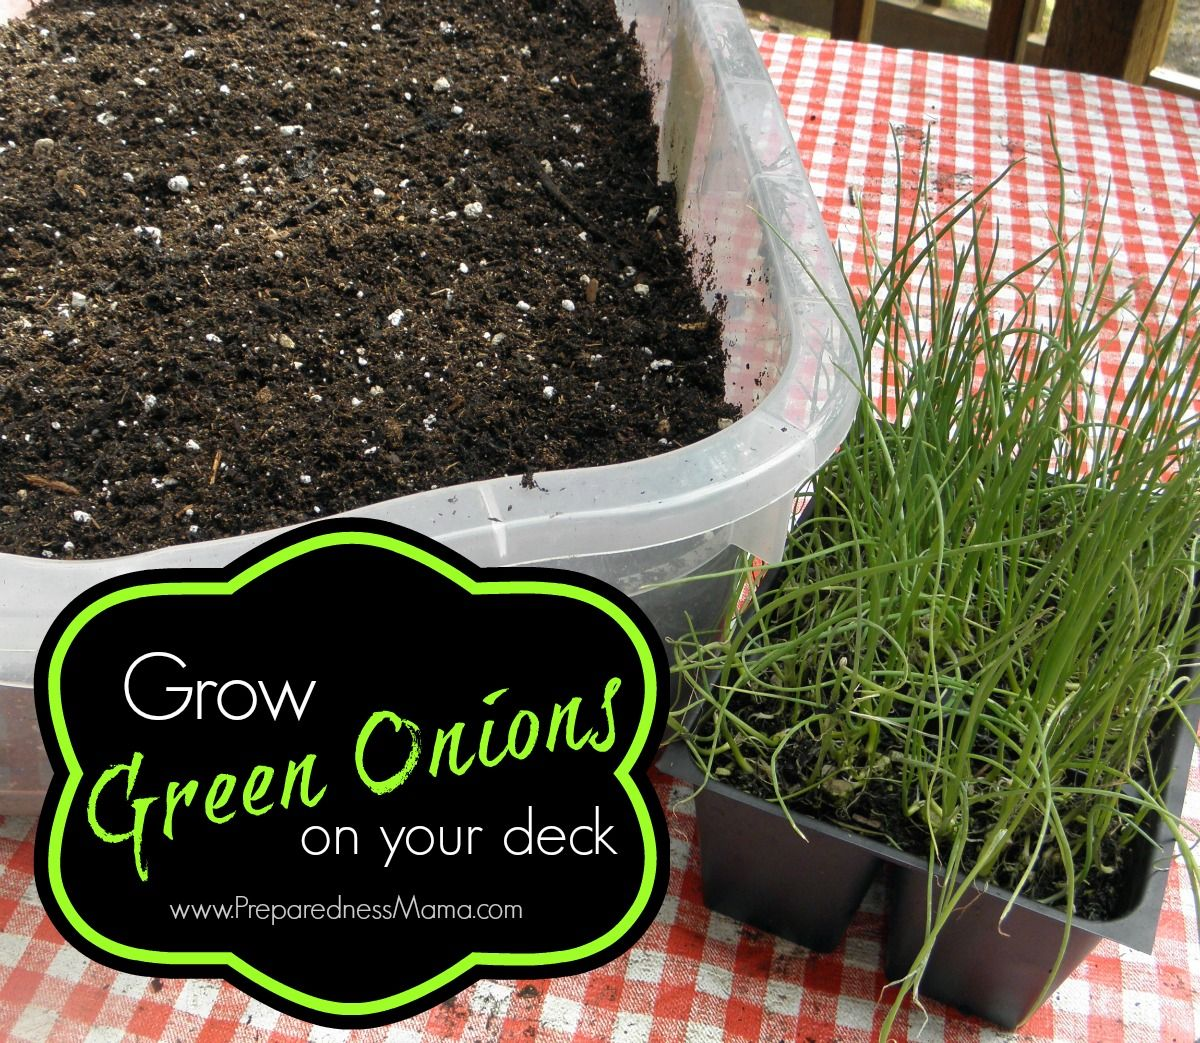 This frugal idea will let you Grow Green Onions on Your Patio all season long. Just purchase a 6 pack of onion sets, put them in a shallow tub and you have cut and come again onions. http://preparednessmama.com/grow-green-onions/